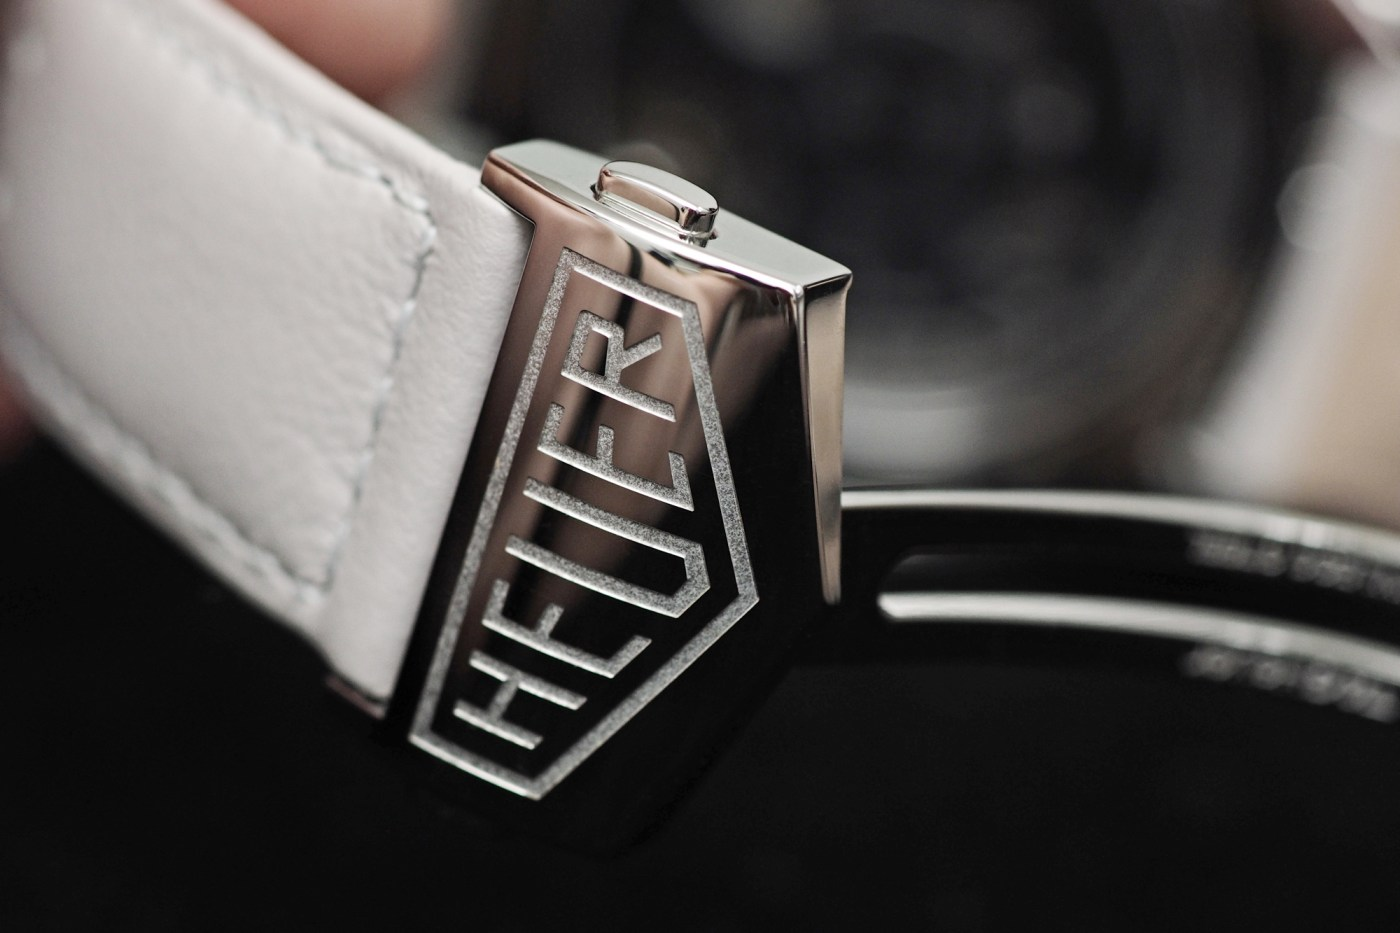 TAG Heuer Mikograph deployant buckle